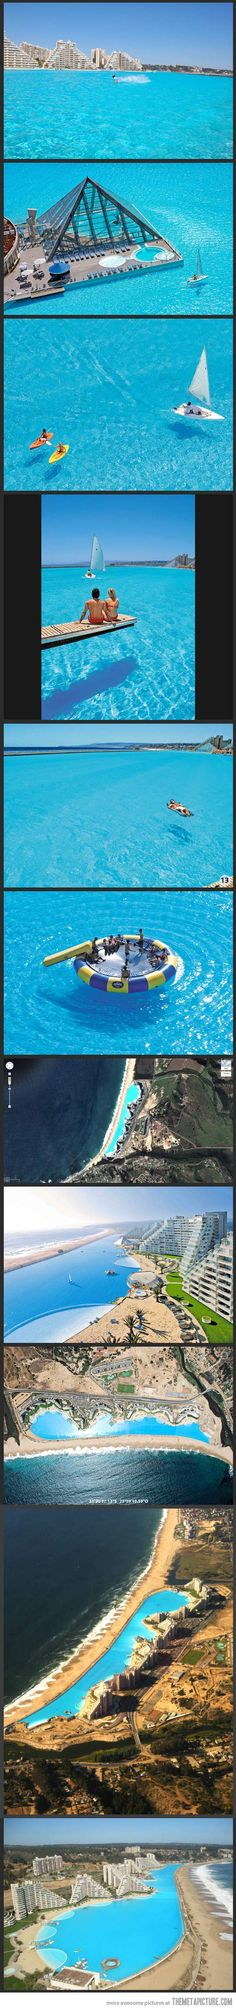 The Largest Swimming Pool in the World… Going there one day!!!!